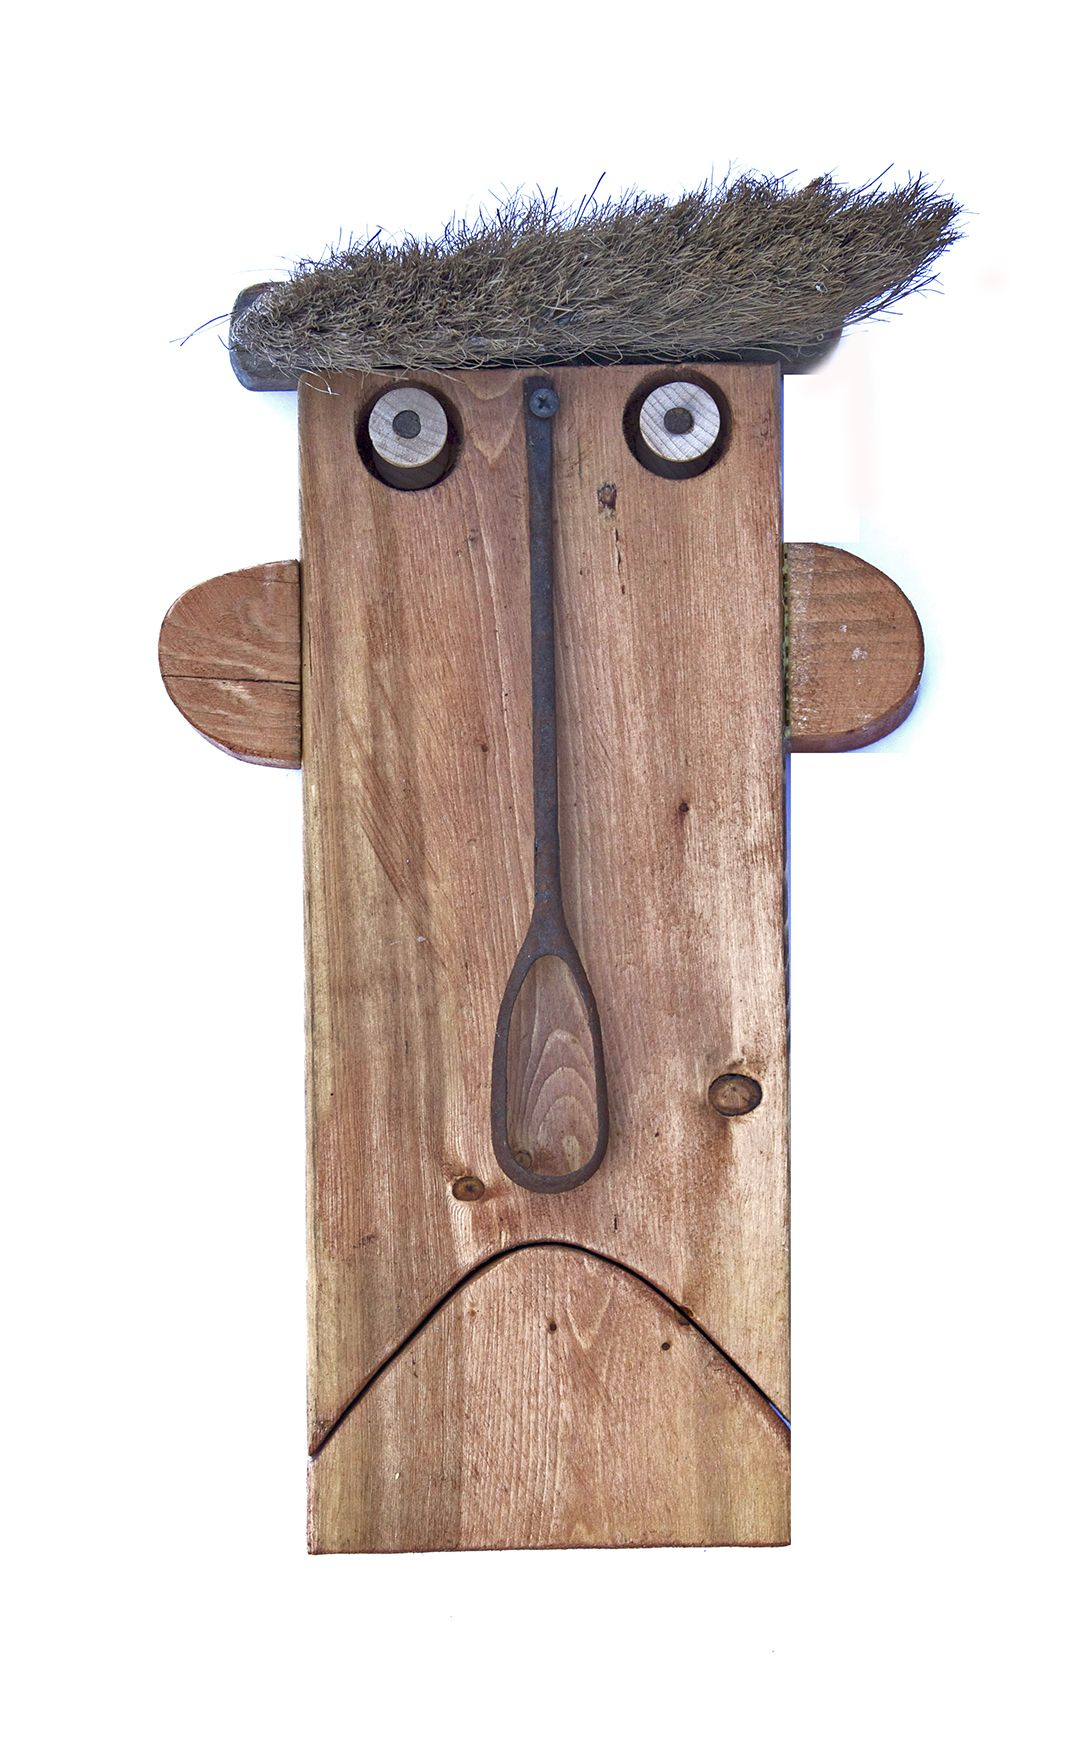 Mr Dt By Pina Macku Wood Projects Wood Art Driftwood Art